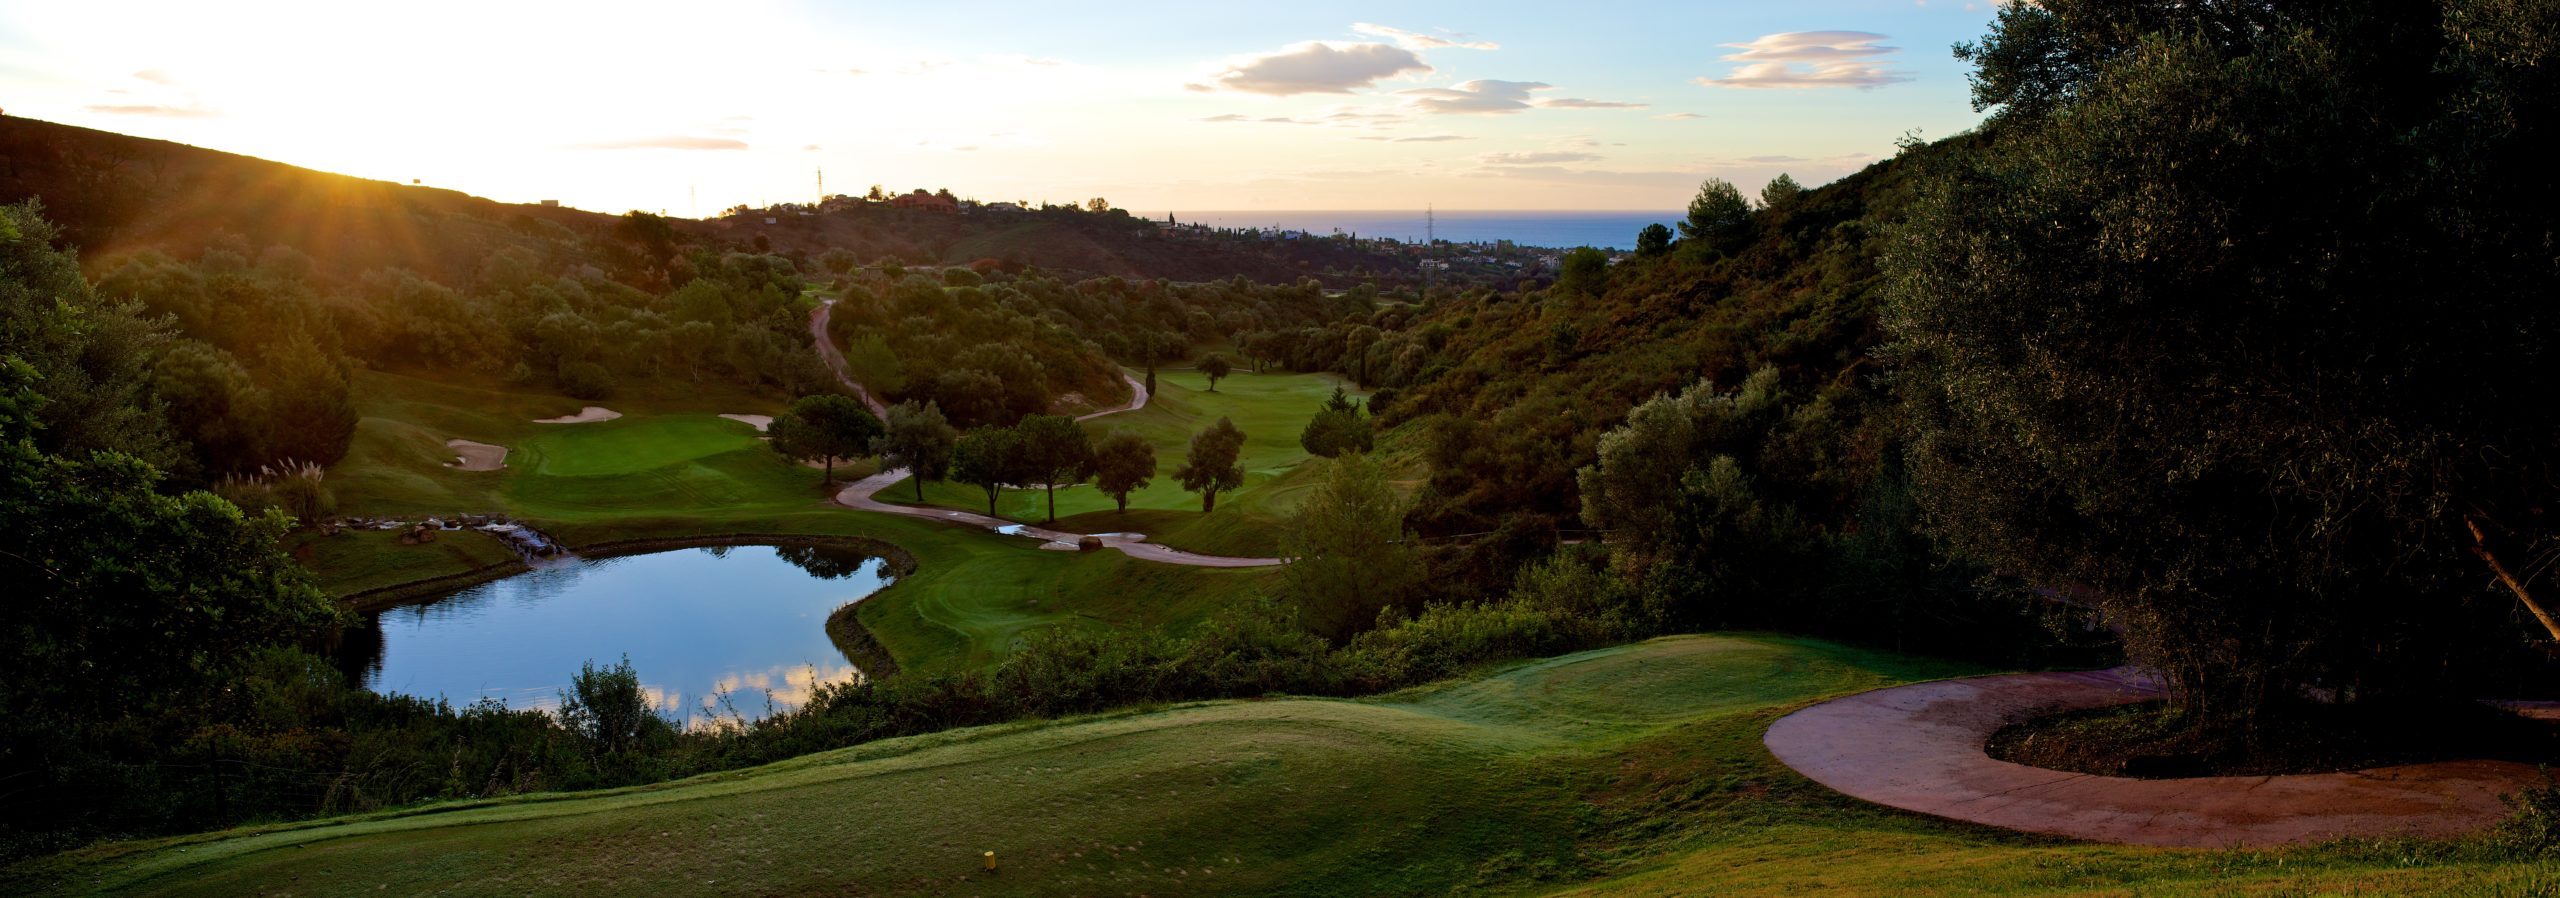 Marbella Golf and country